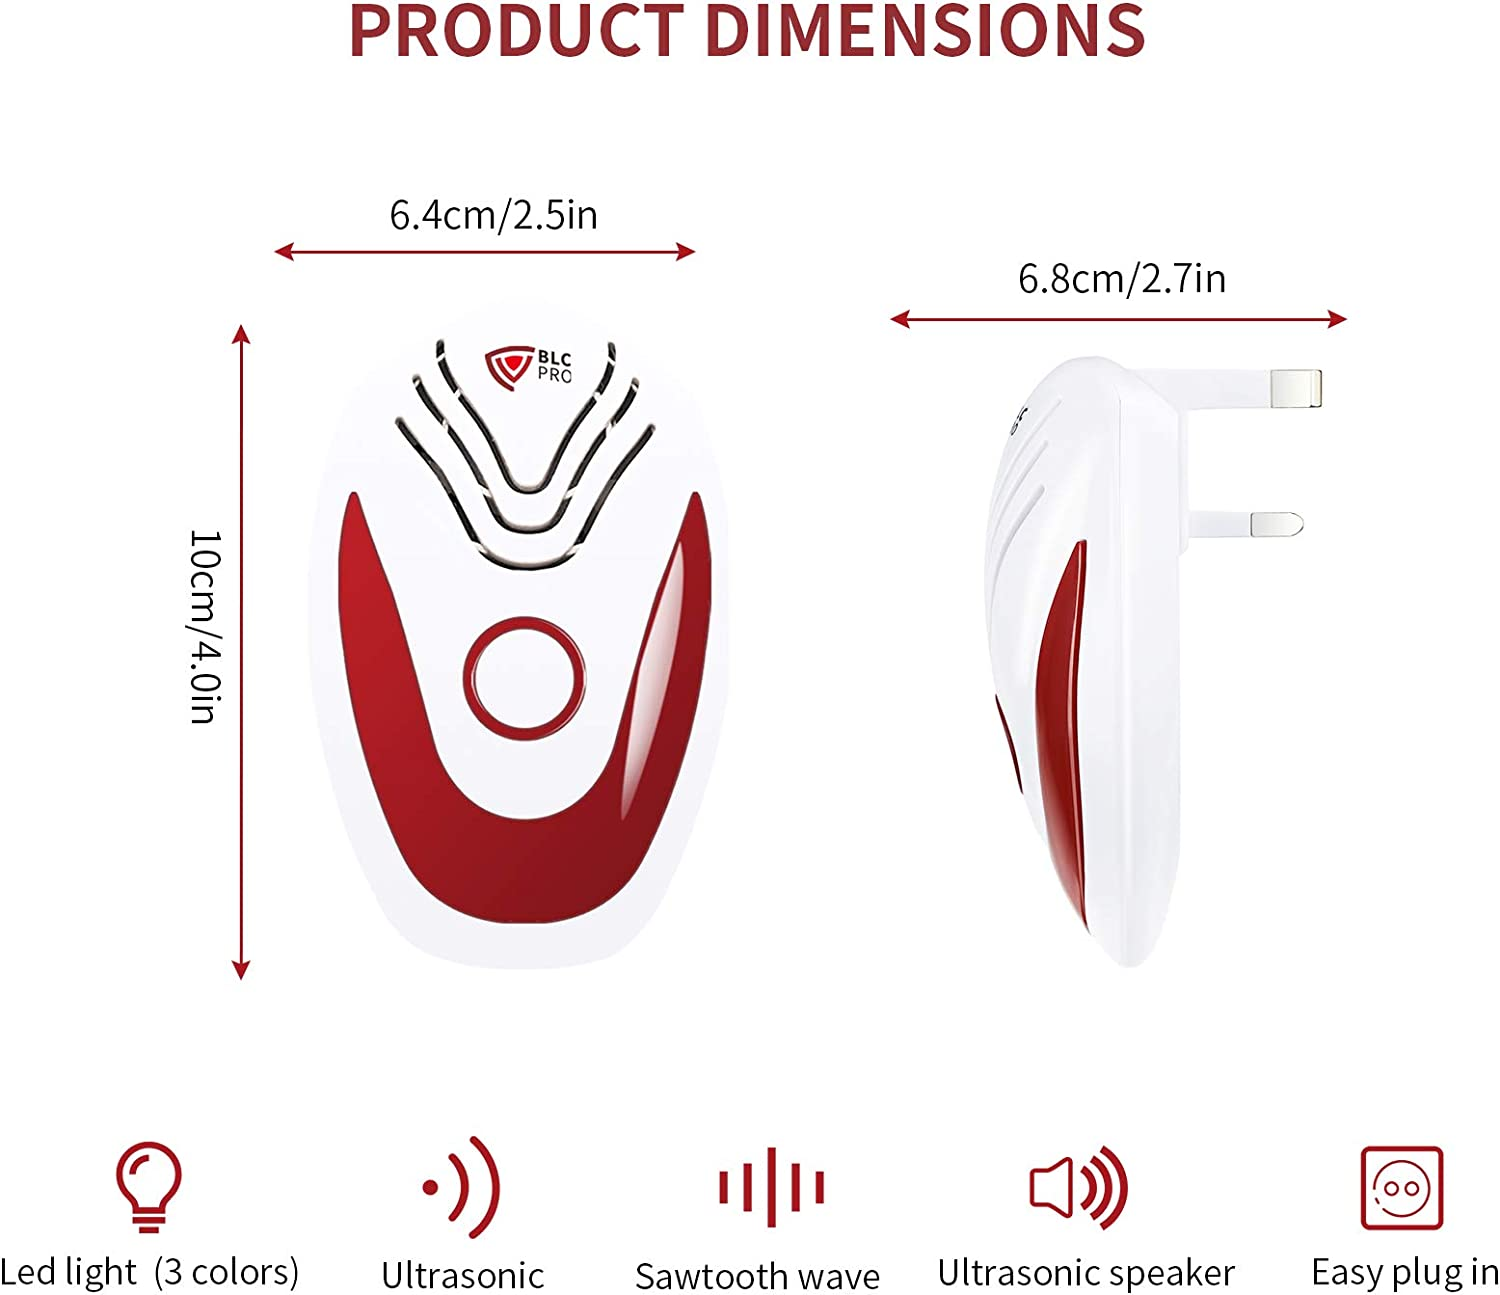 Electronic Plug-in Pest Control with 3 in 1 Intelligent Frequency Conversion Technology Cockroach Moth Mite BLCPRO Ultrasonic Pest Repeller Mosquito Efficiently Repelling Rat Bed Bug Mouse